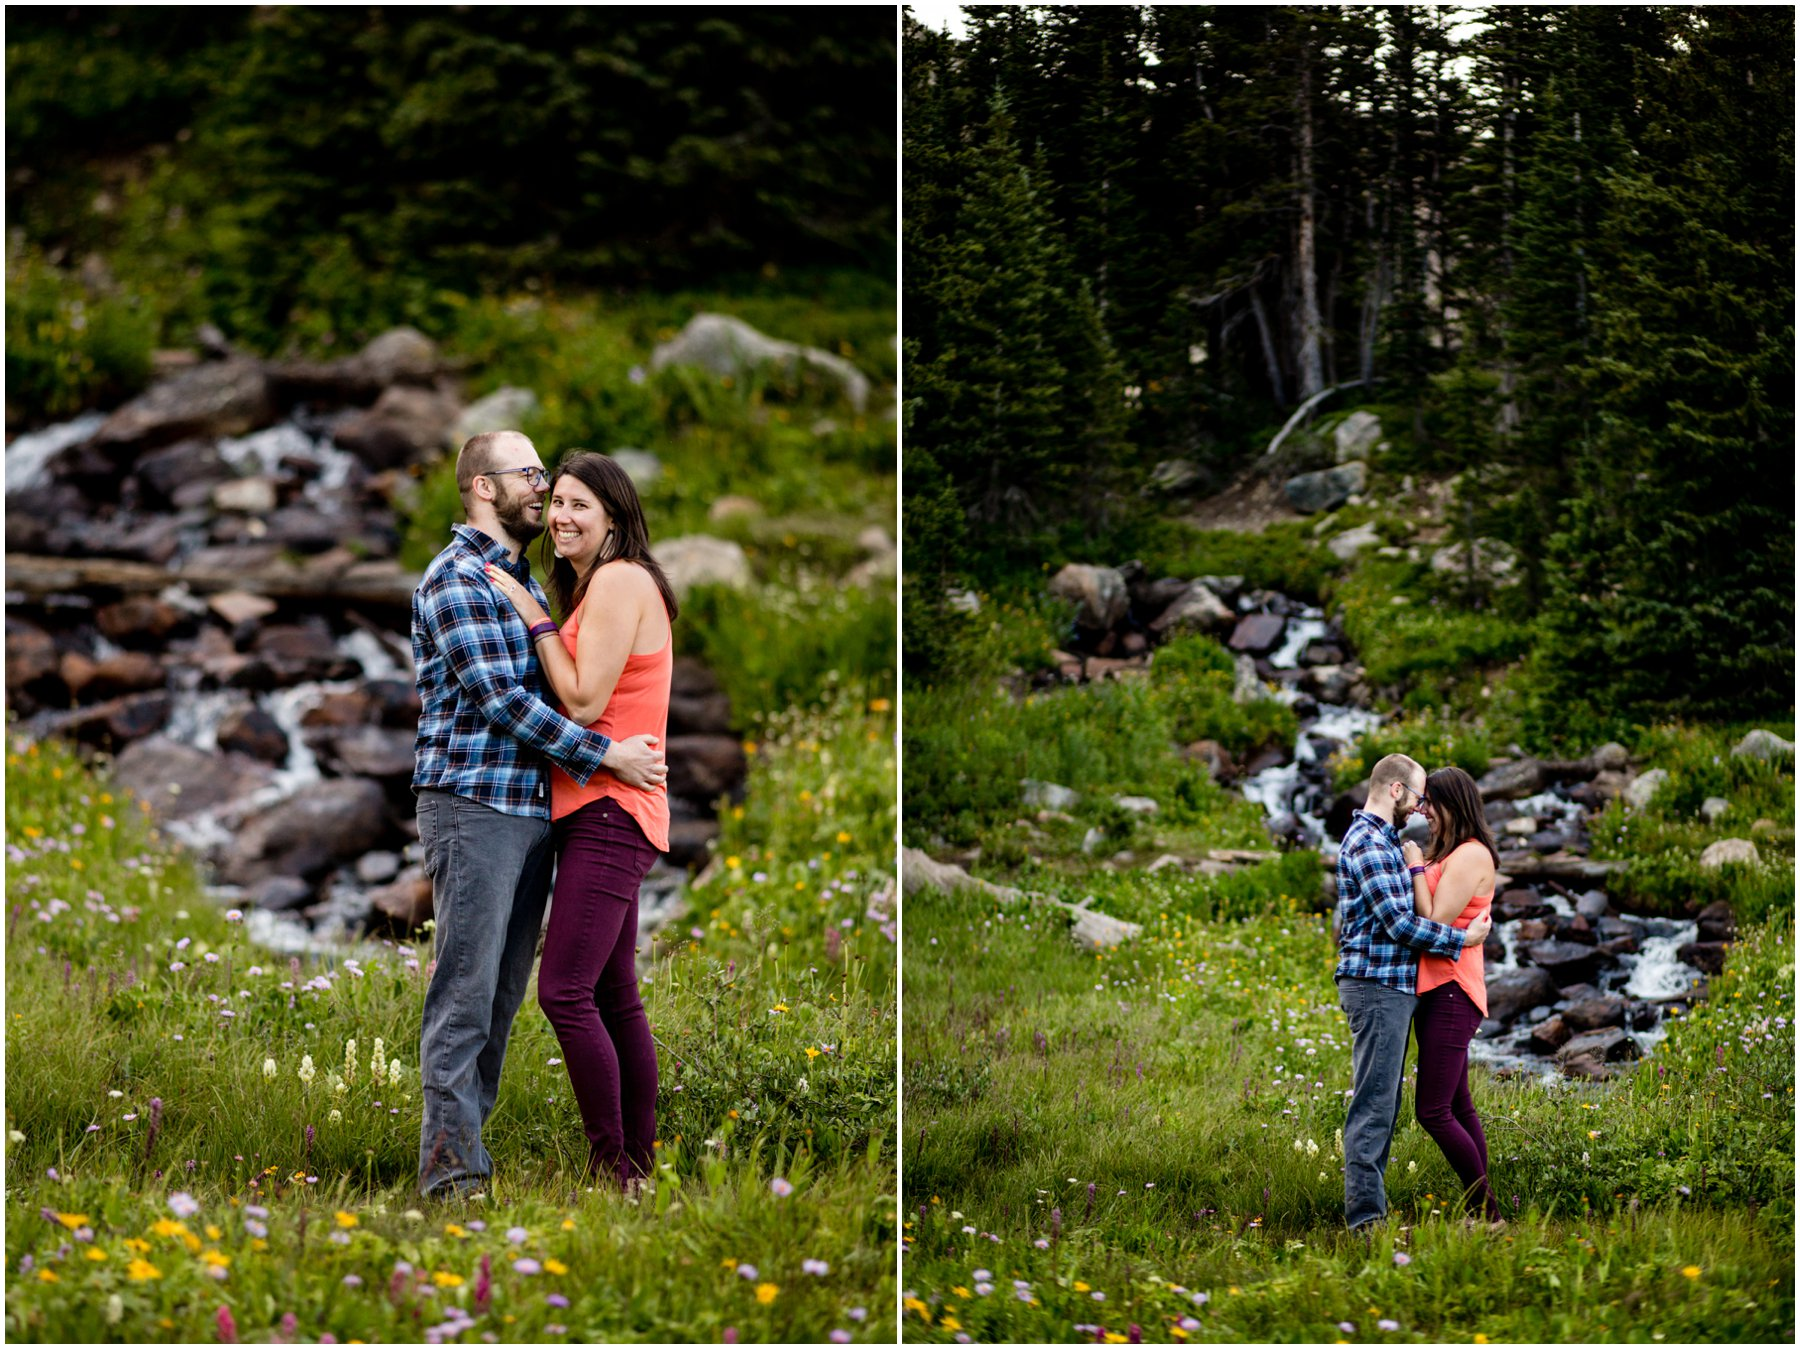 Hiking in Wildflowers Engagement Photography